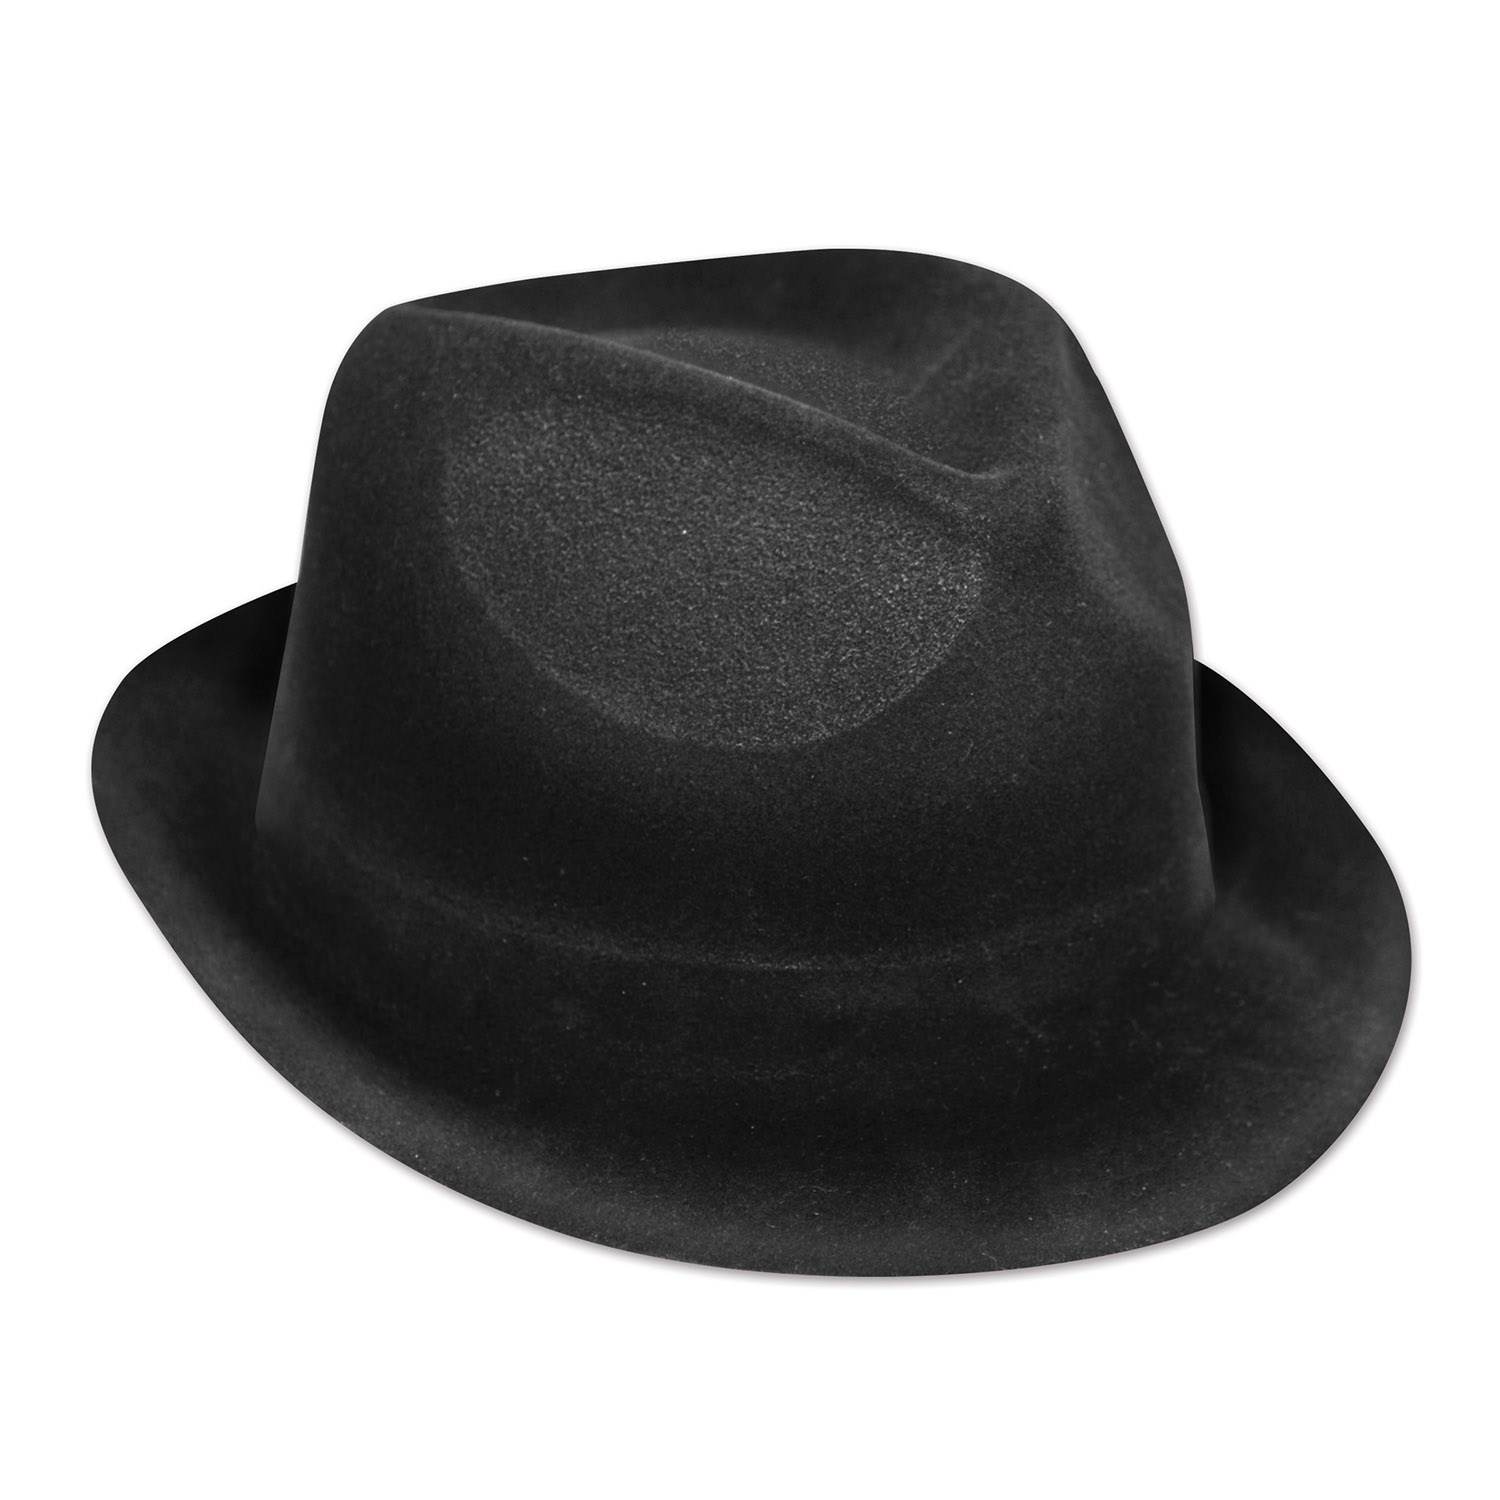 Velour Chairman Hat (Pack of 25) Velour Chairman Hat, Halloween, 1920s, party favor, wholesale, inexpensive, bulk